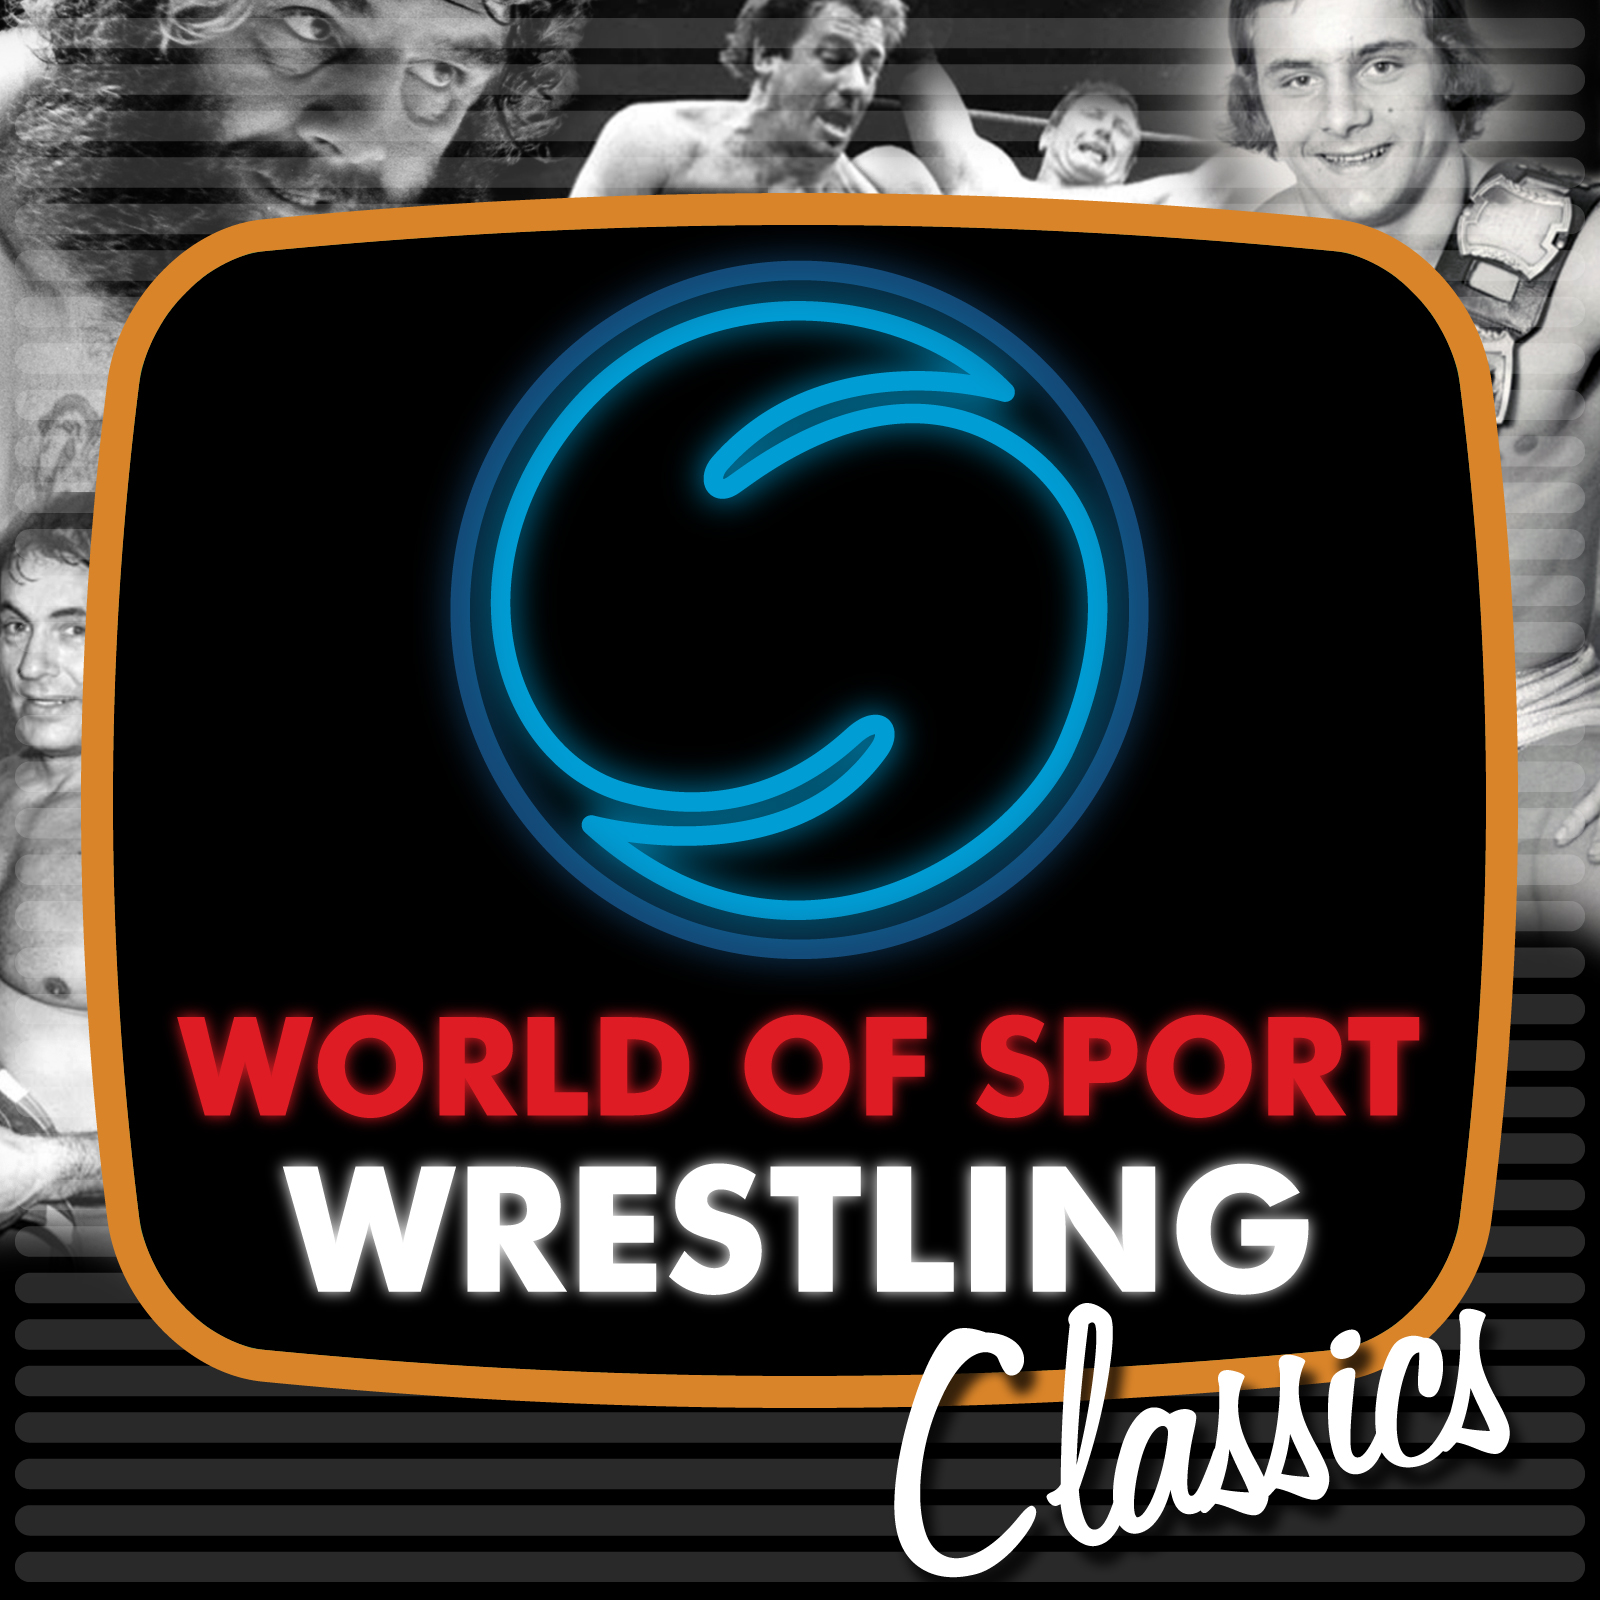 world of sport Hotels near or close to espn wide world of sports in kissimmee florida area  find deals and phone #'s for hotels/motels around espn wide world of sports.